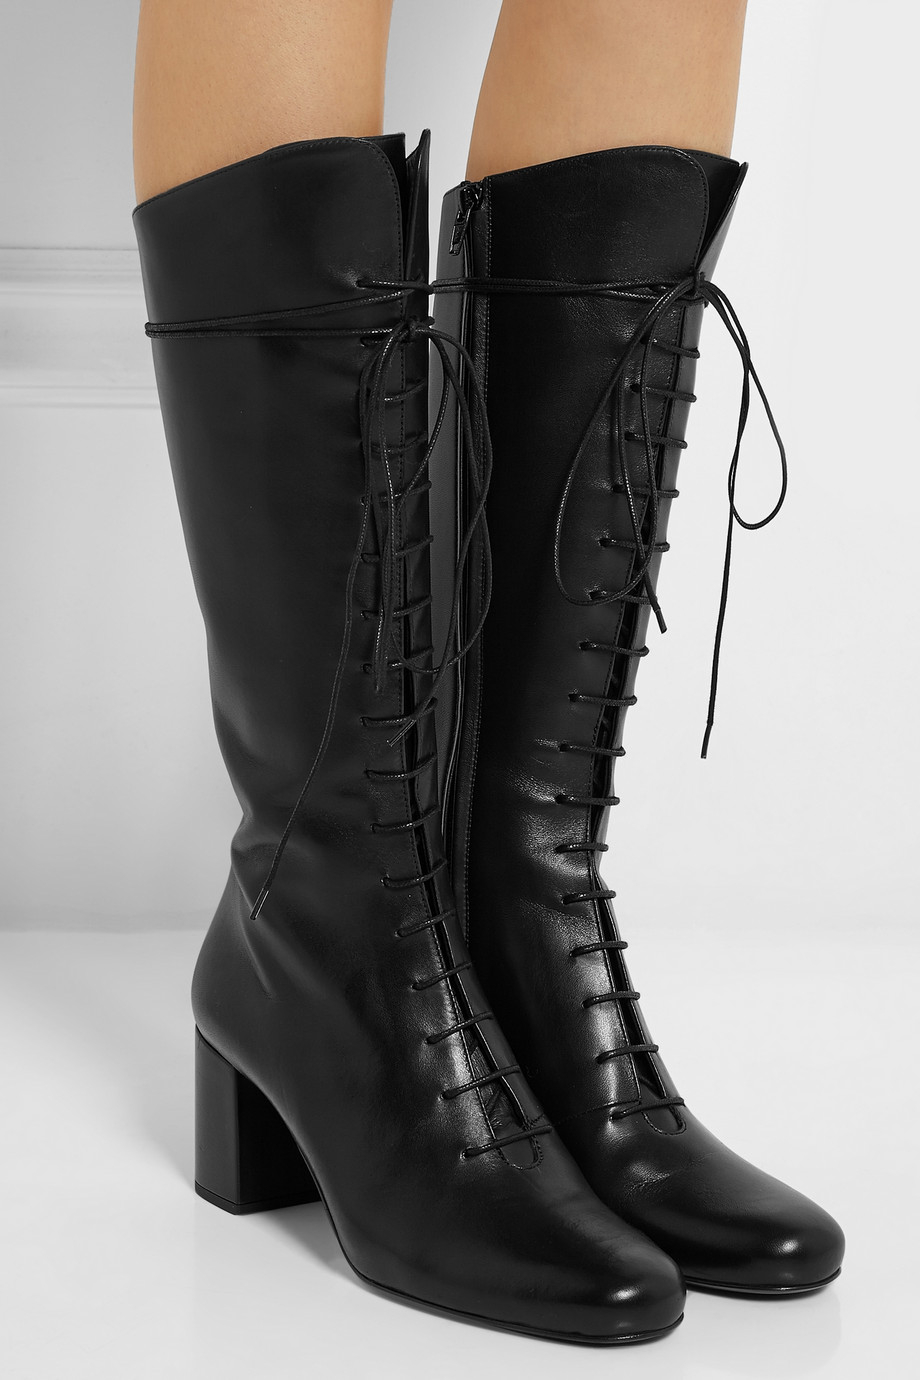 Lyst  Saint Laurent LaceUp Leather Knee Boots in Black